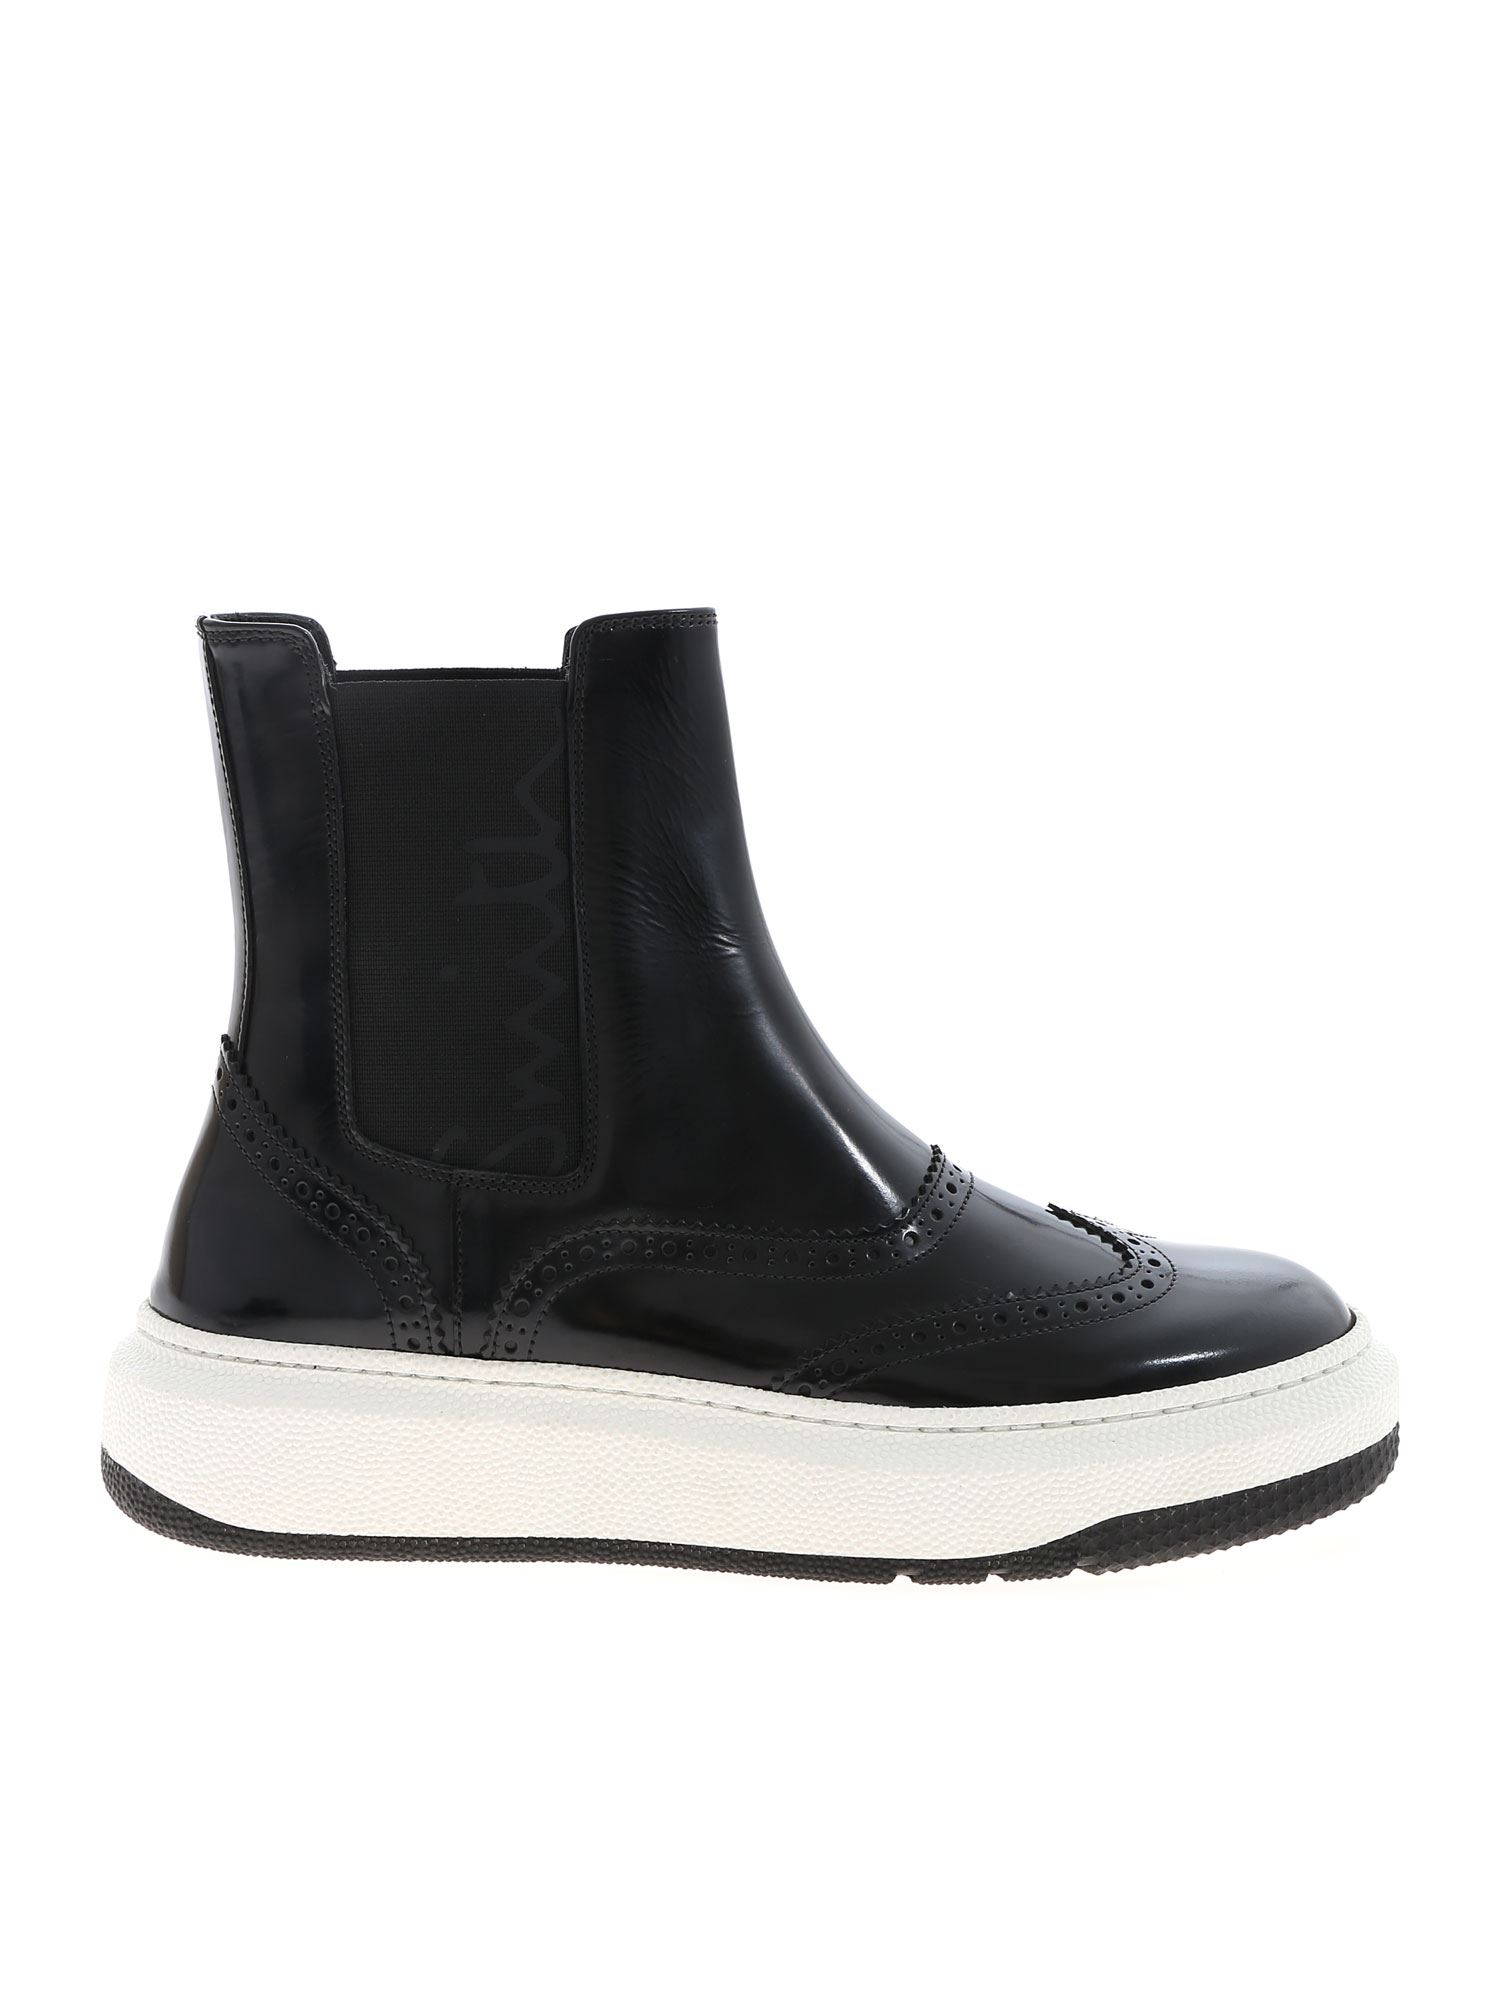 Paul Smith LAMBETH ANKLE BOOTS IN BLACK